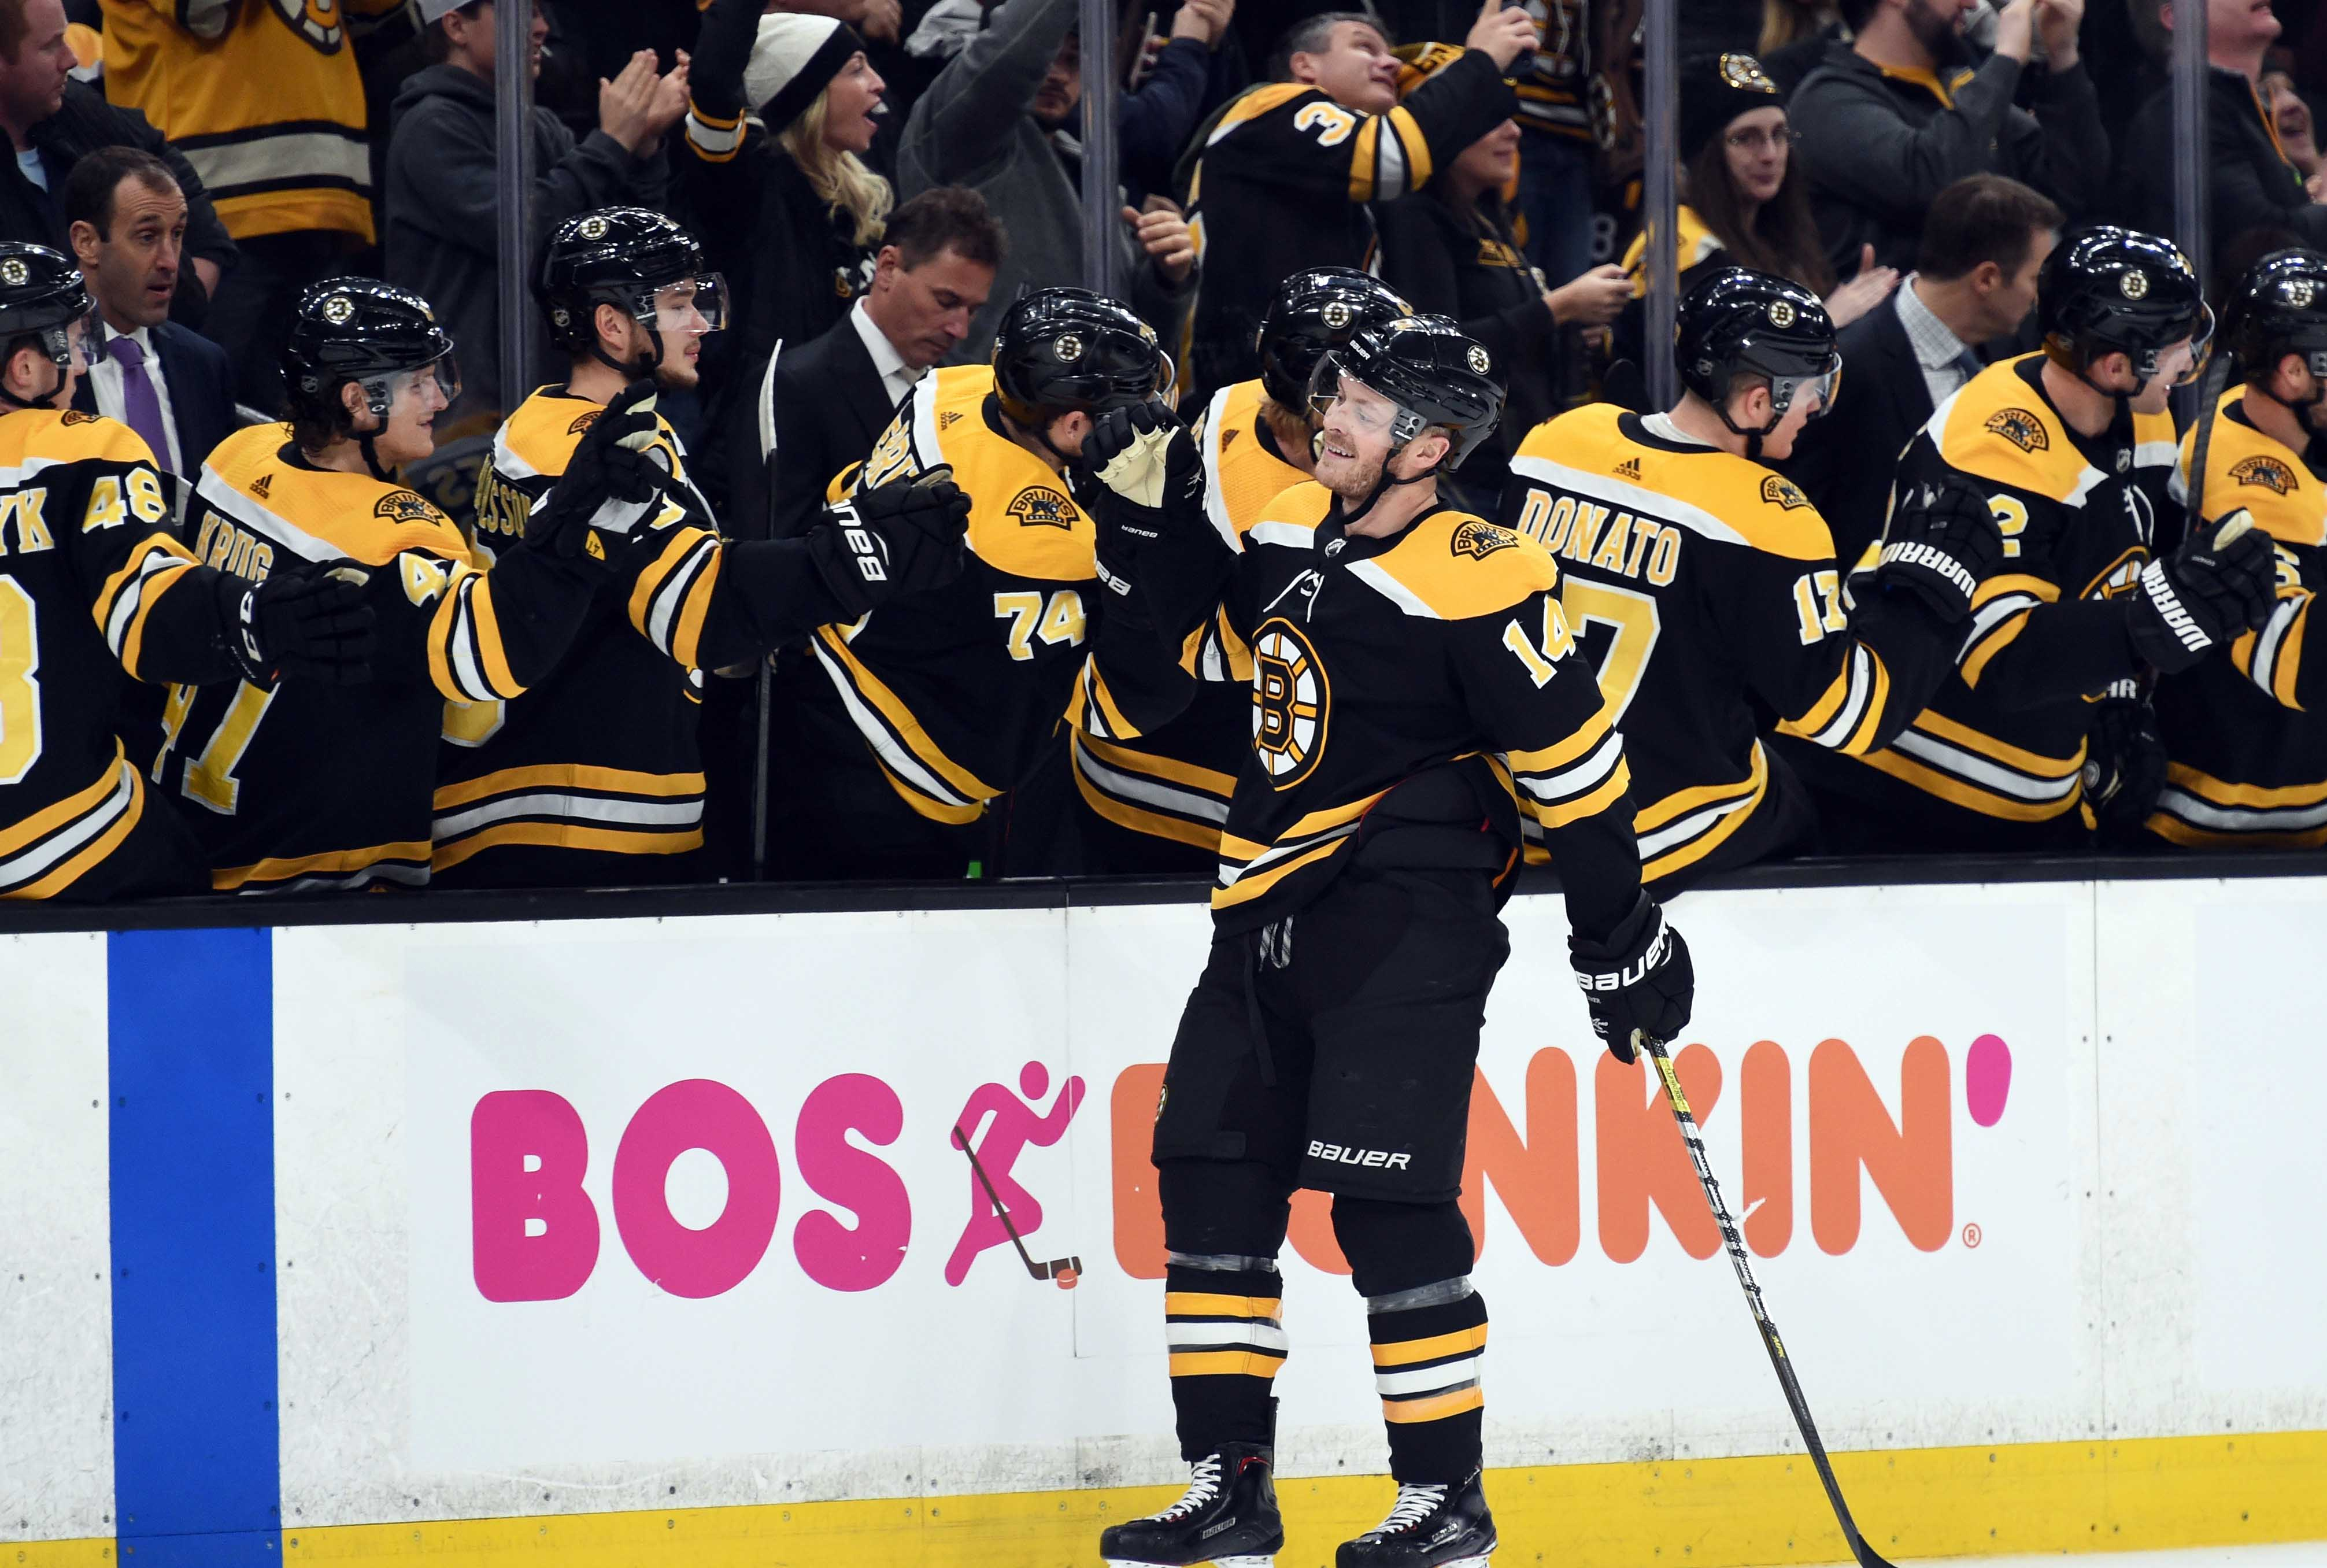 58c90b680 One day after the death of his grandfather Bruins forward Chris Wagner  scored a crucial goal in a big win